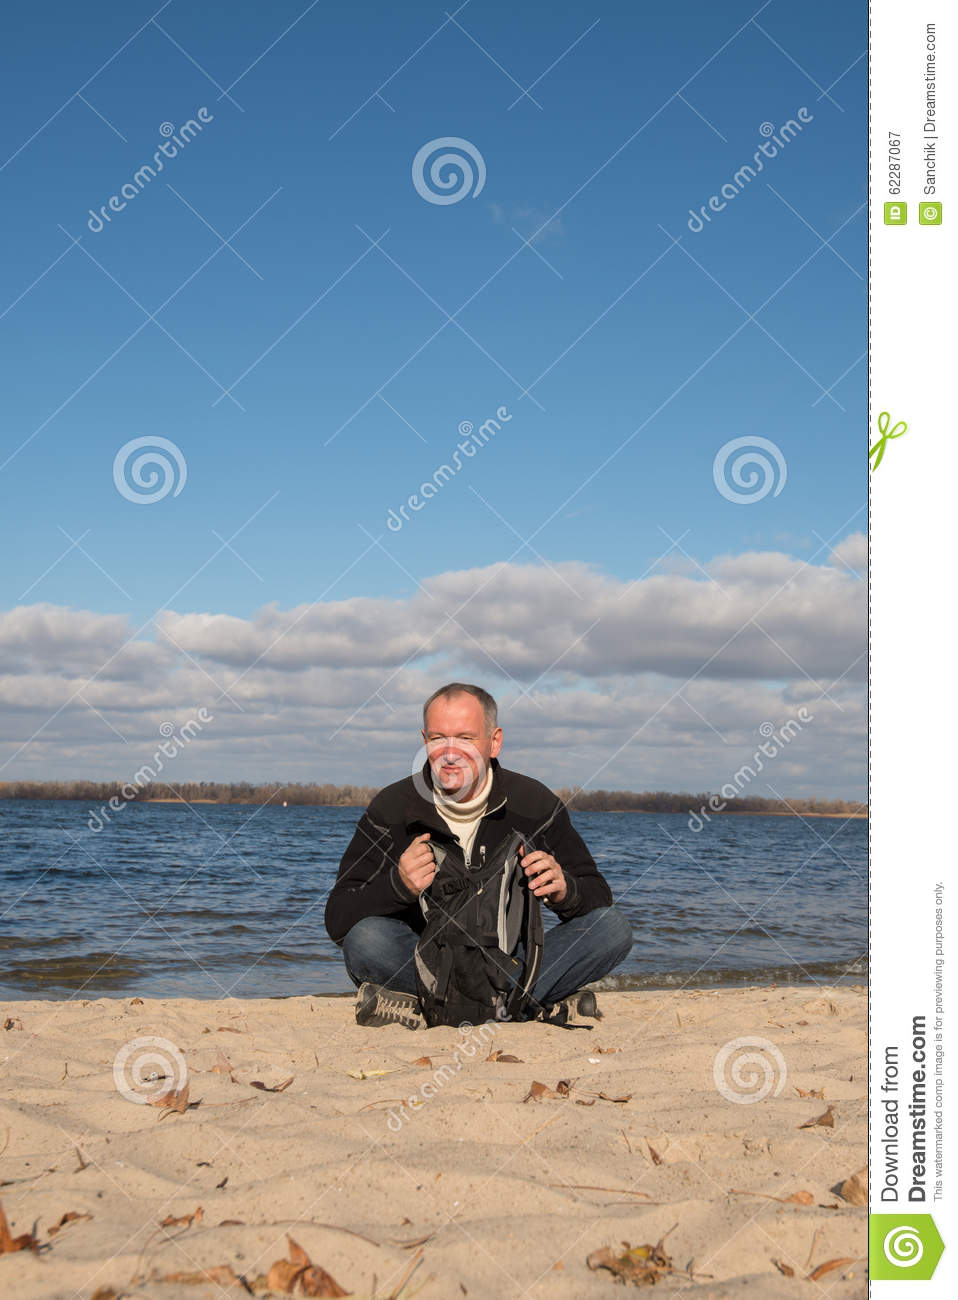 Hiker man resting on the coast, smiling looking at the contents